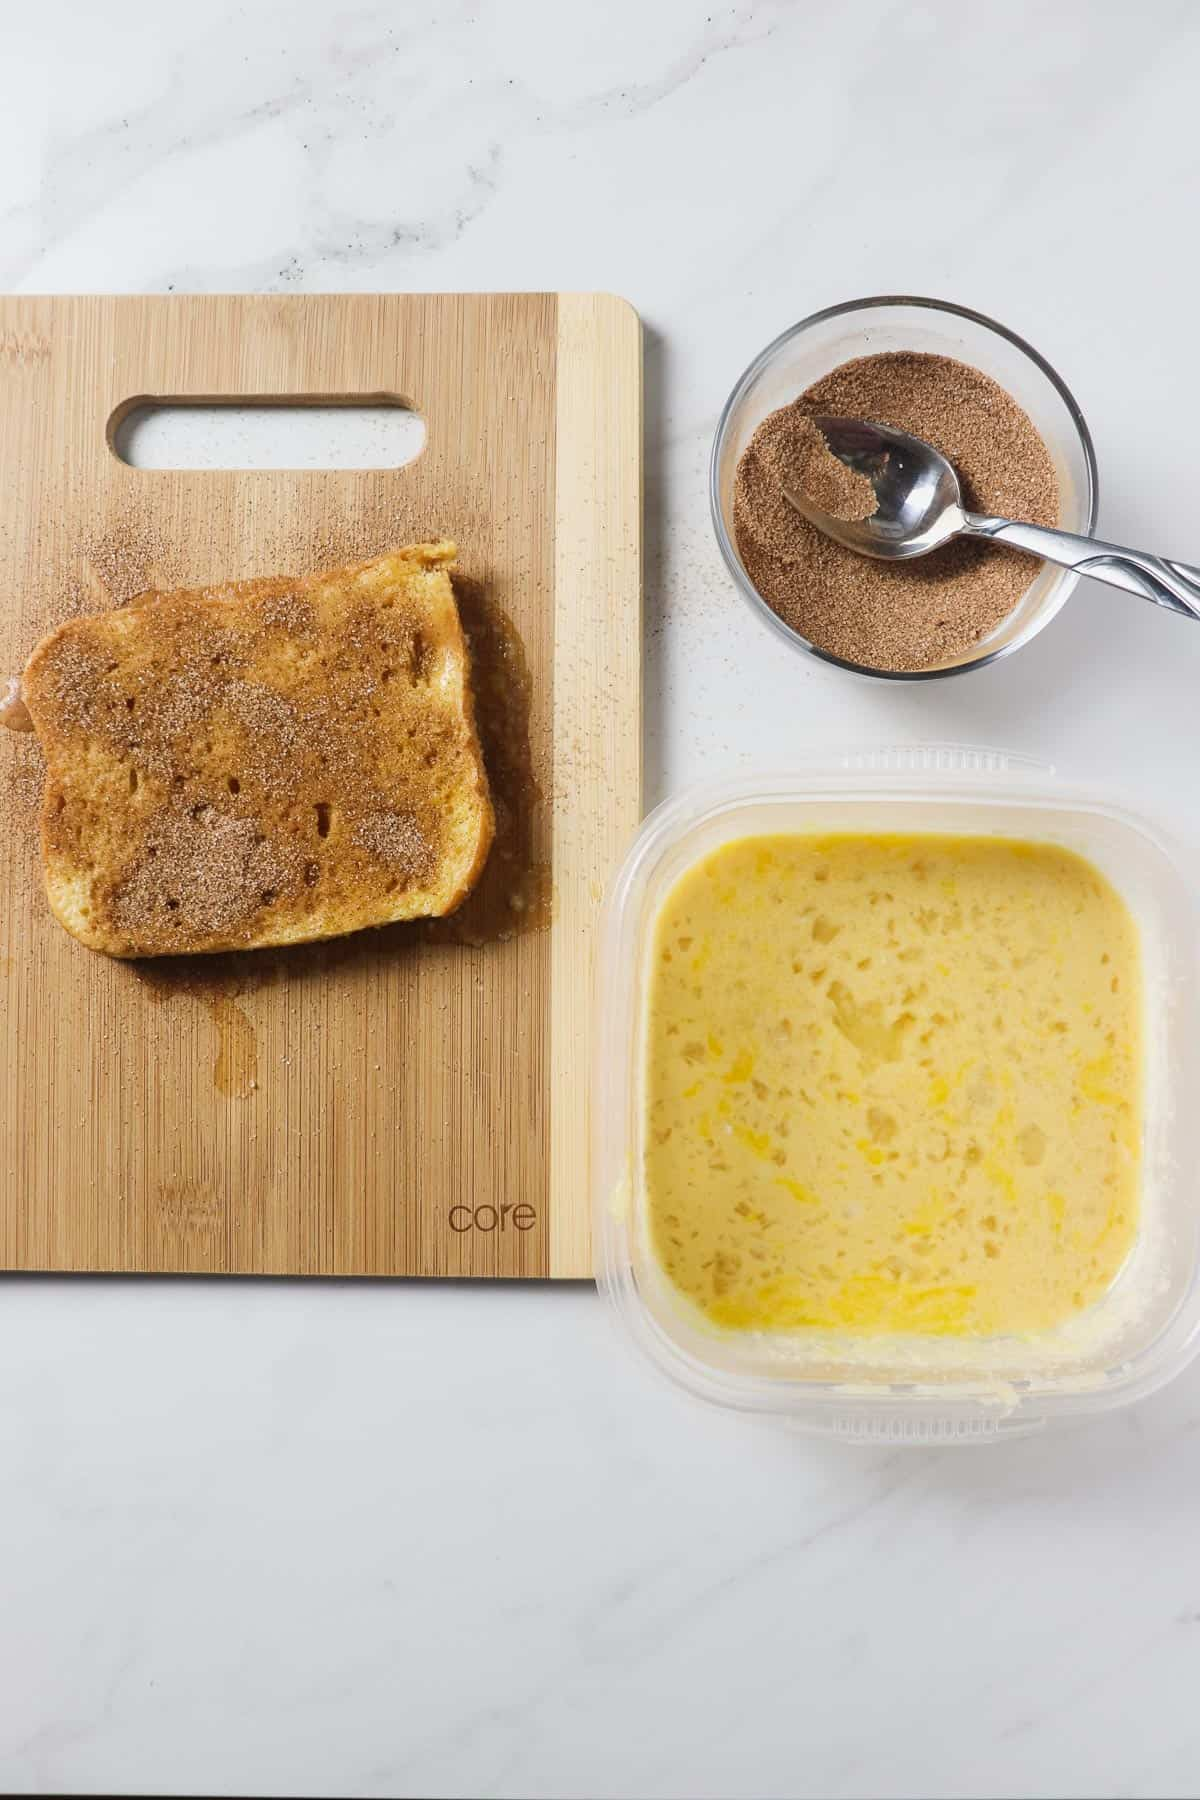 preparing french toast on a cutting board with an egg and milk mixture and cinnamon sugar mixture